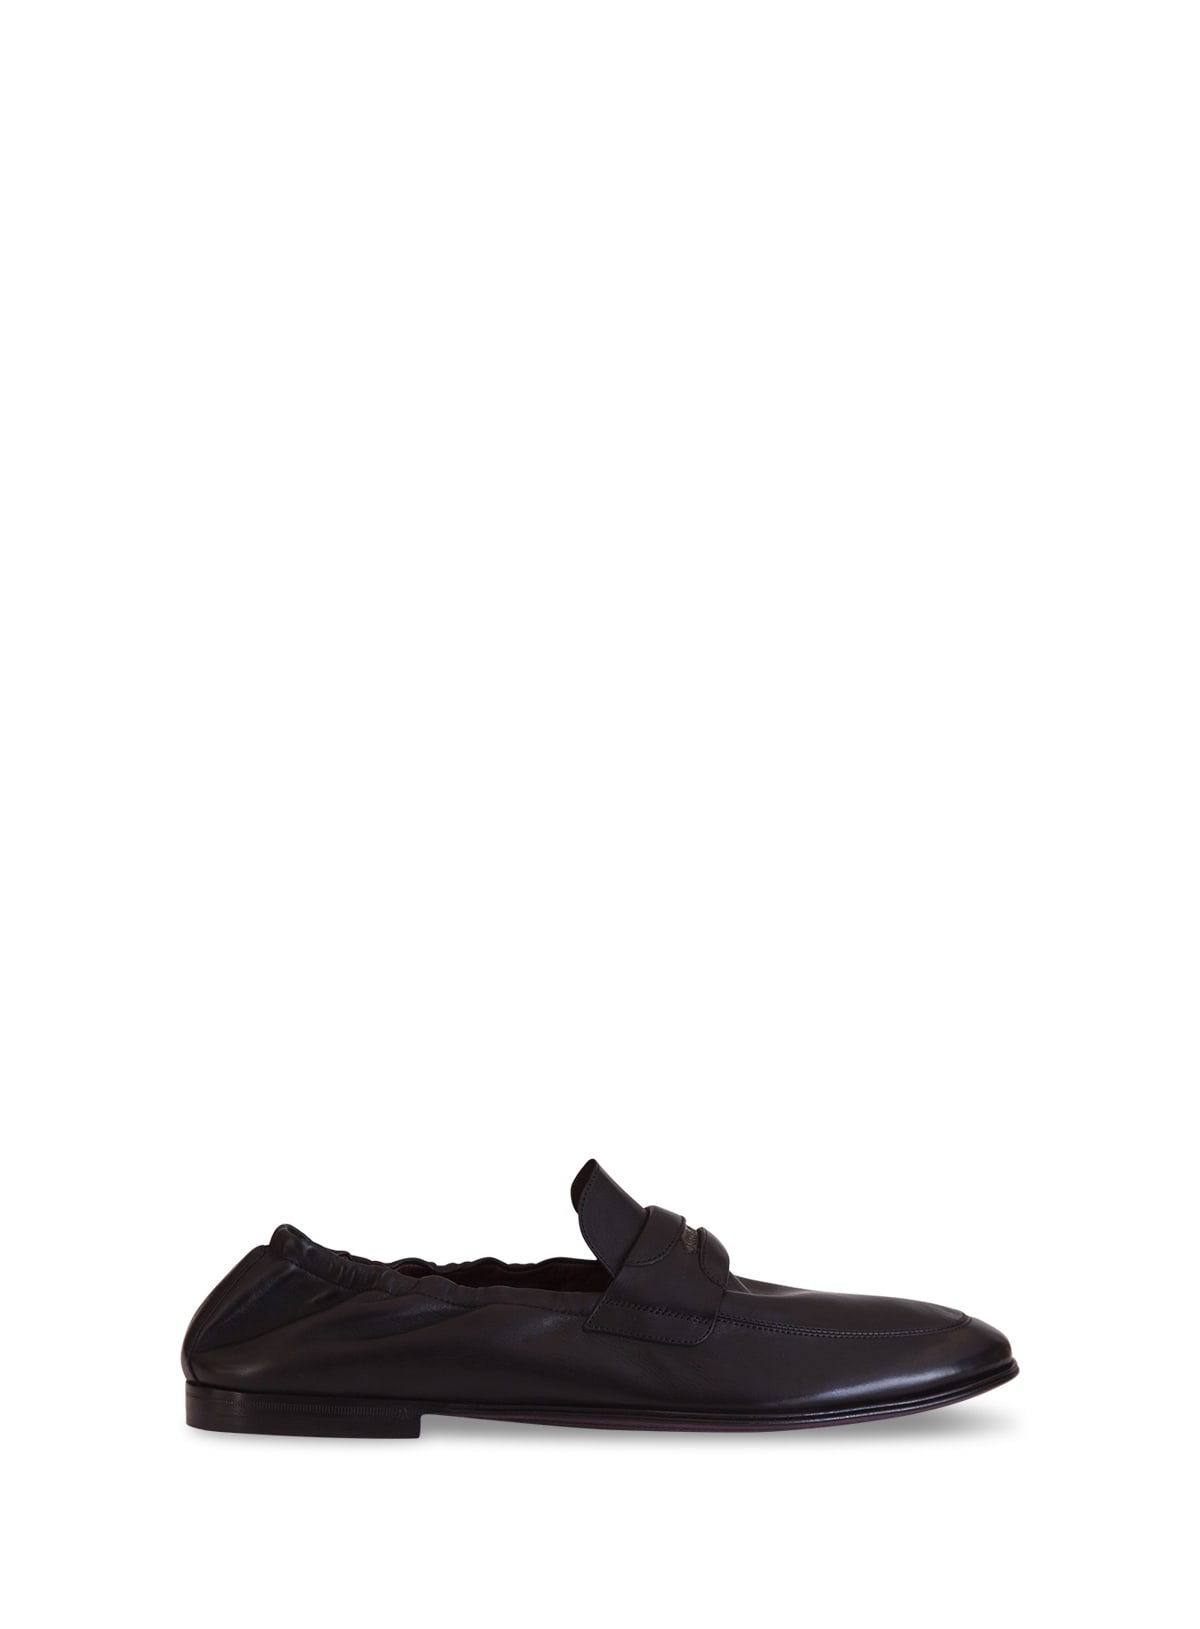 Dolce & Gabbana Leathers LOGO-EMBOSSED LEATHER SLIPPERS